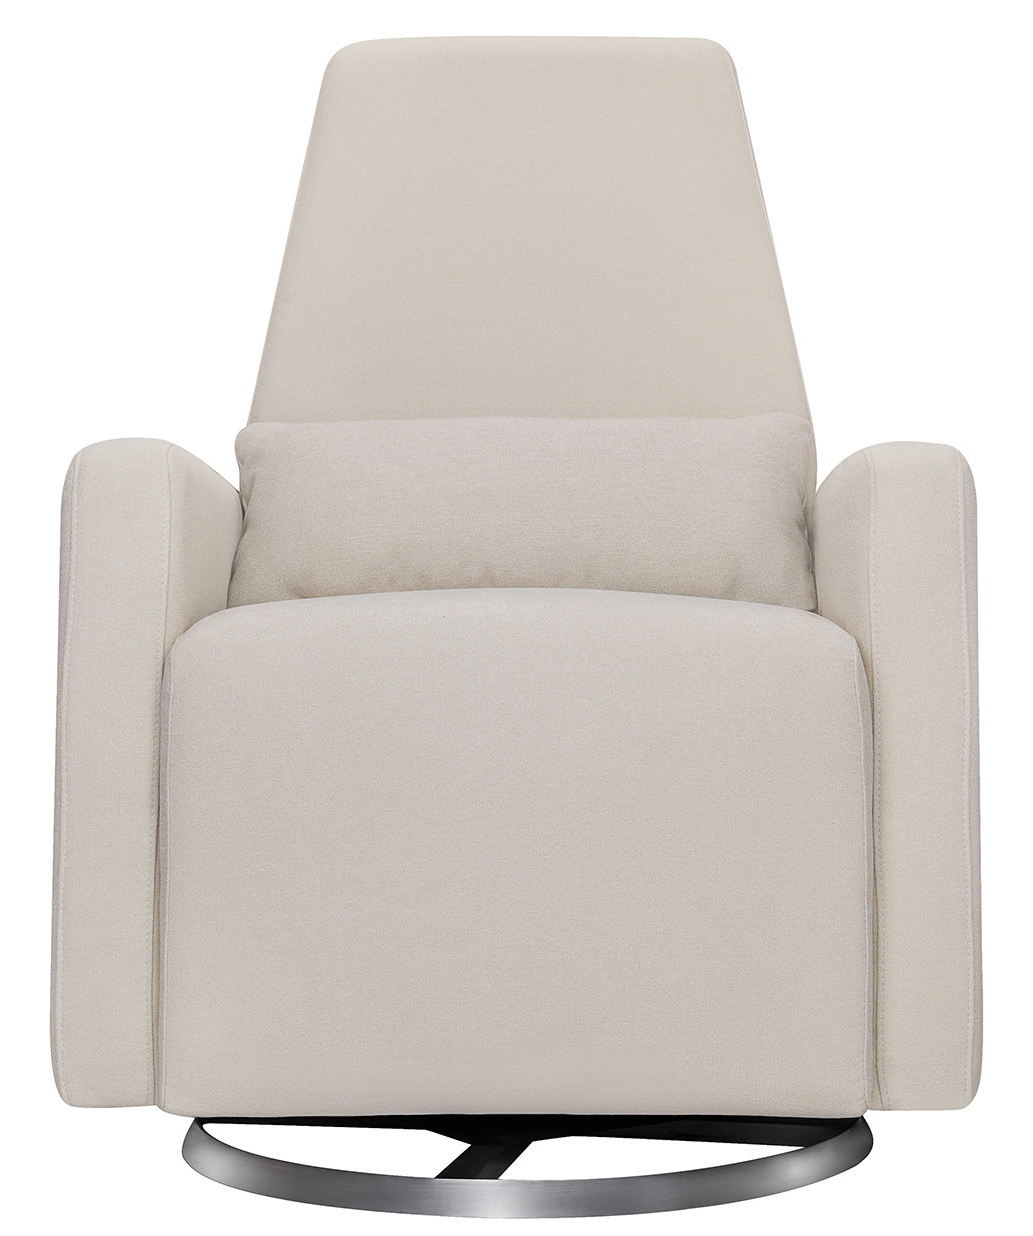 Allmodern With Mari Swivel Glider Recliners (Gallery 7 of 20)